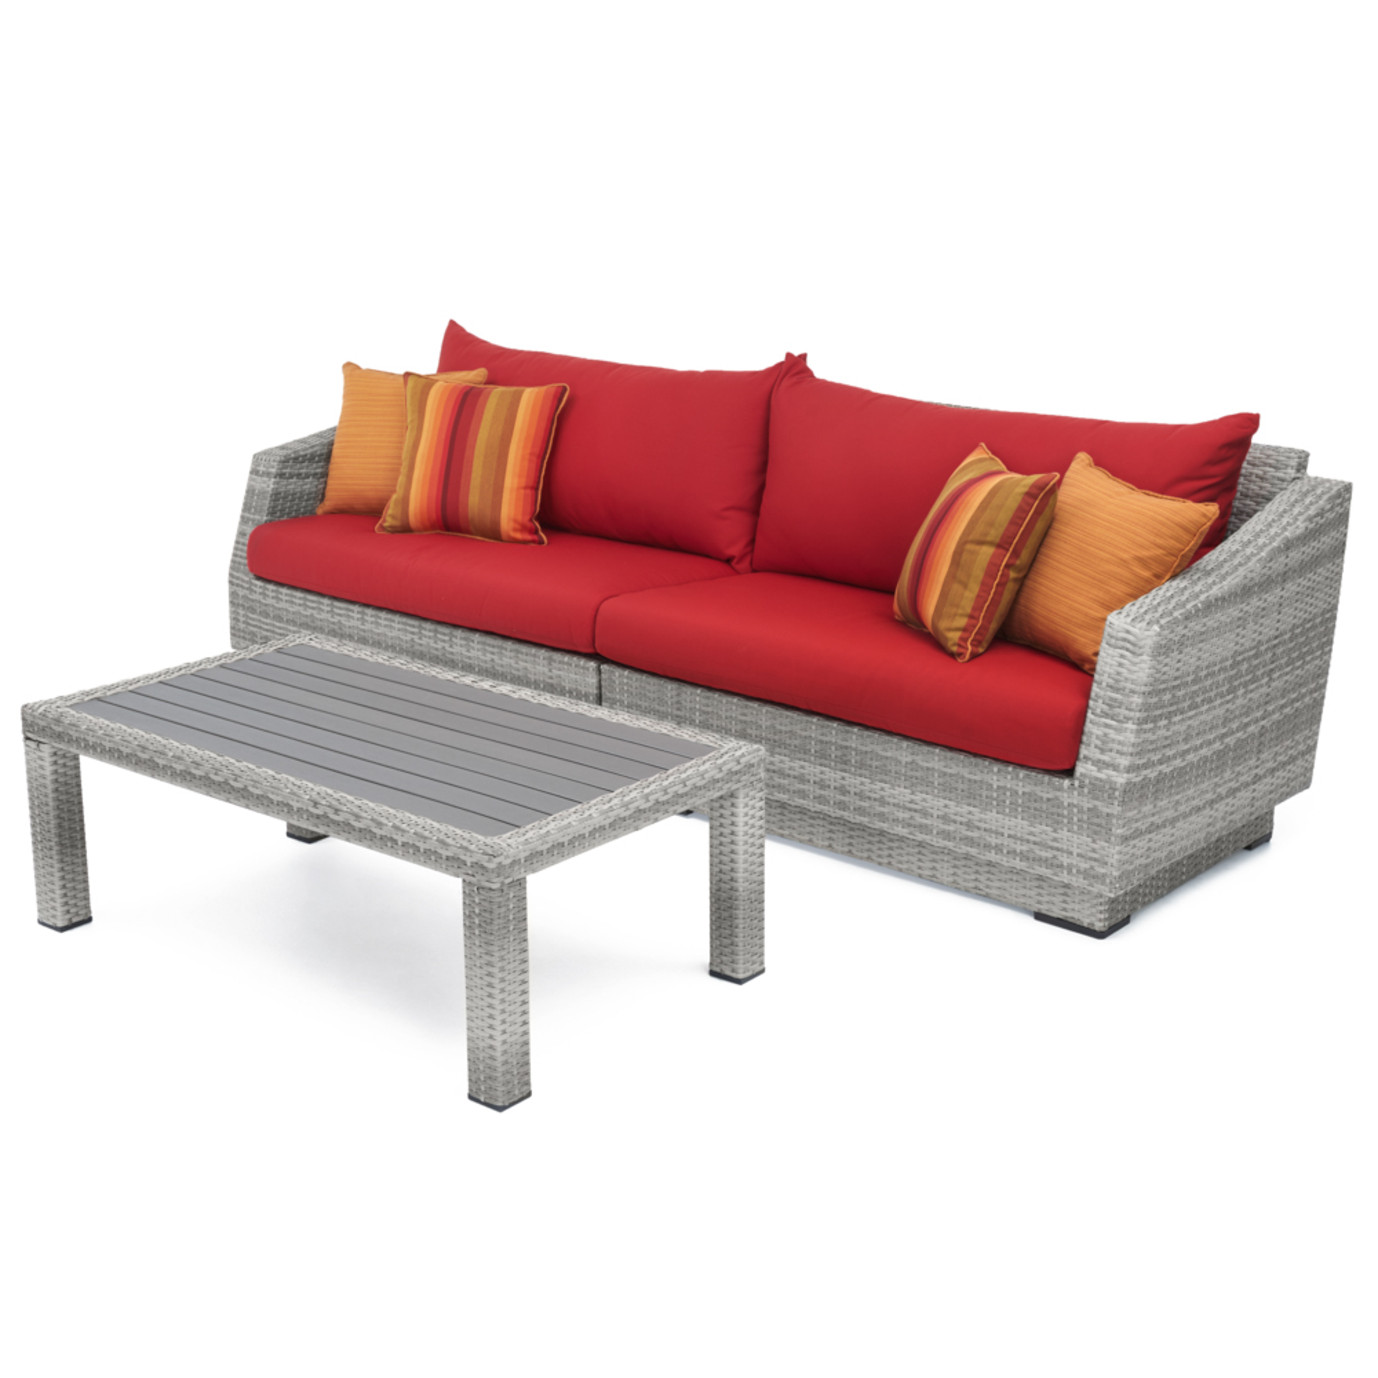 Cannes™ Sofa & Deluxe Coffee Table - Sunset Red